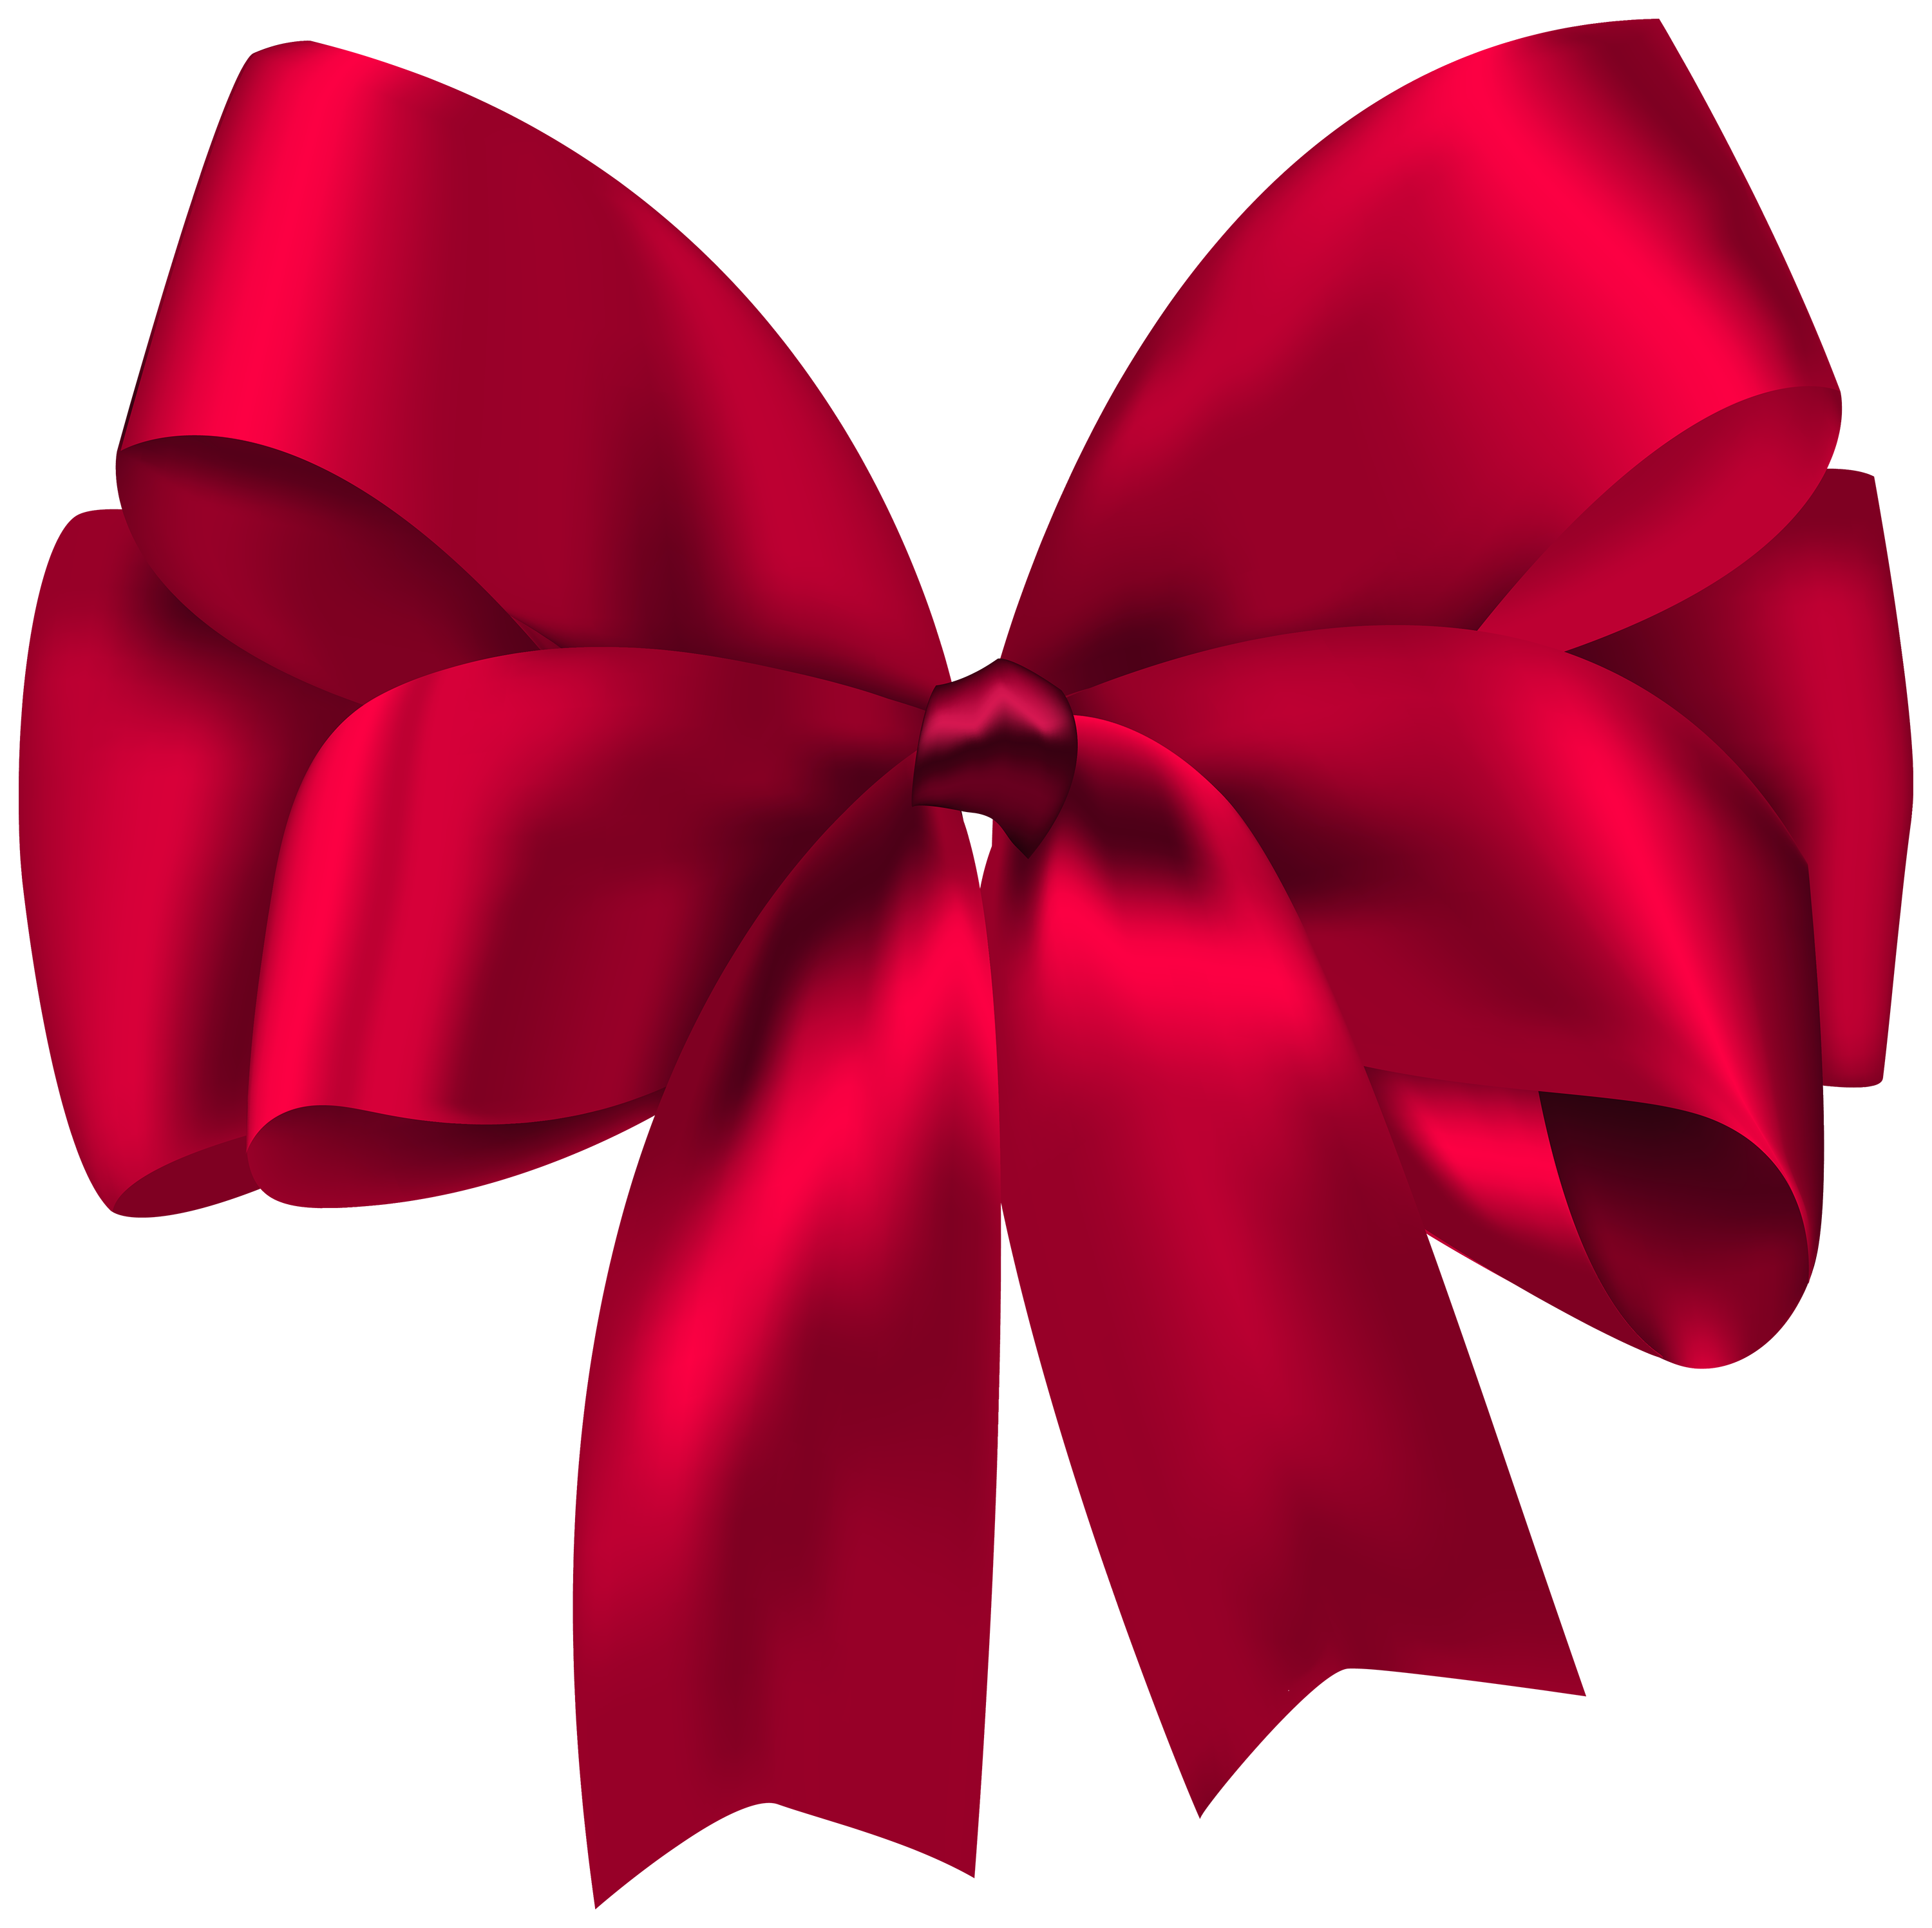 bow clipart at getdrawings com free for personal use bow clipart rh getdrawings com bow clipart free bow clip art images